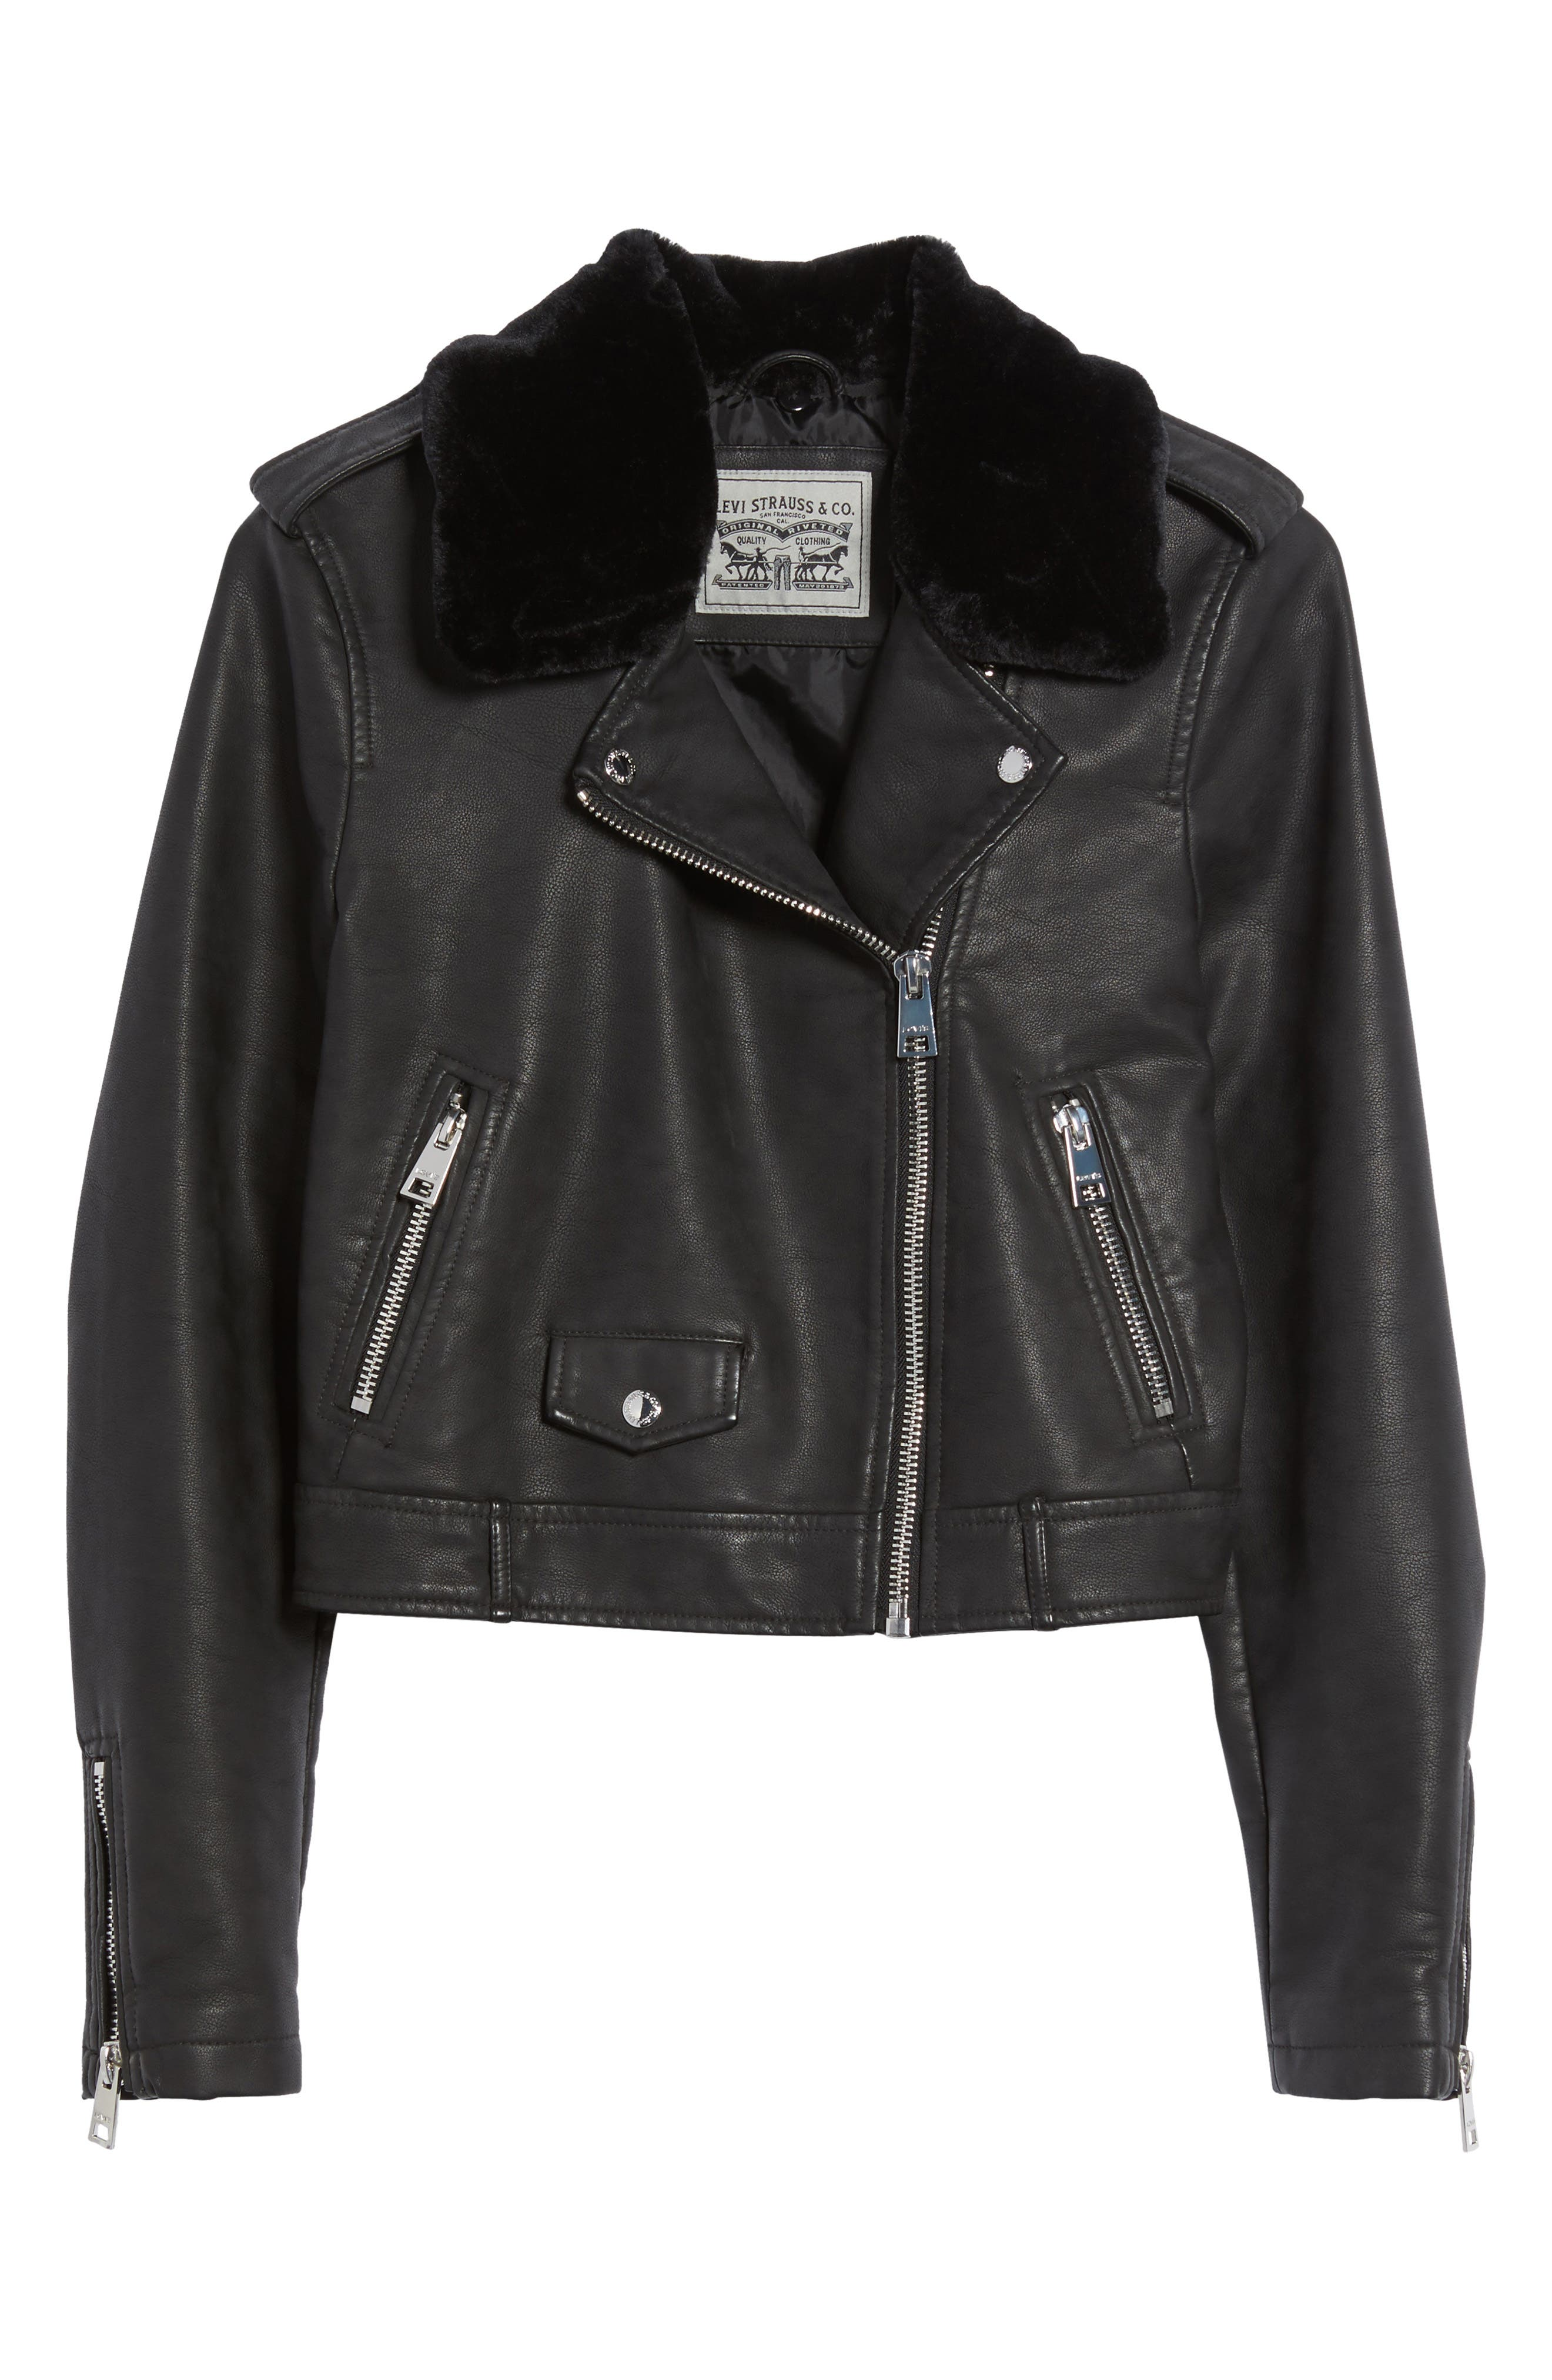 Levis<sup>®</sup> Sherpa Faux Leather Moto Jacket with Faux Fur Collar,                             Alternate thumbnail 6, color,                             Black